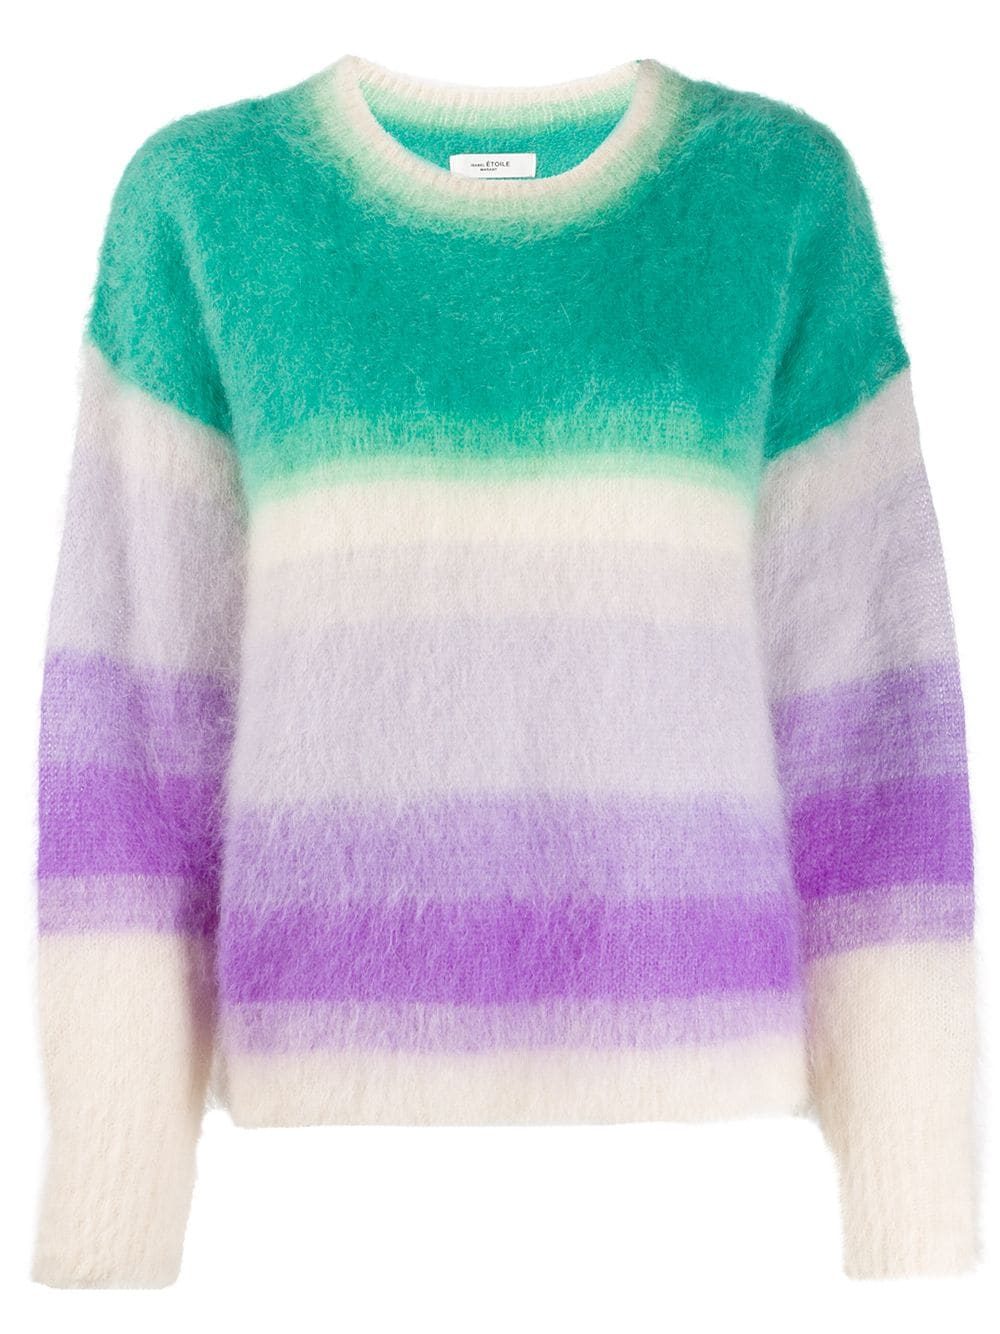 Isabel Marant Etoile-Drussell Mohair Knit Sweater-Green